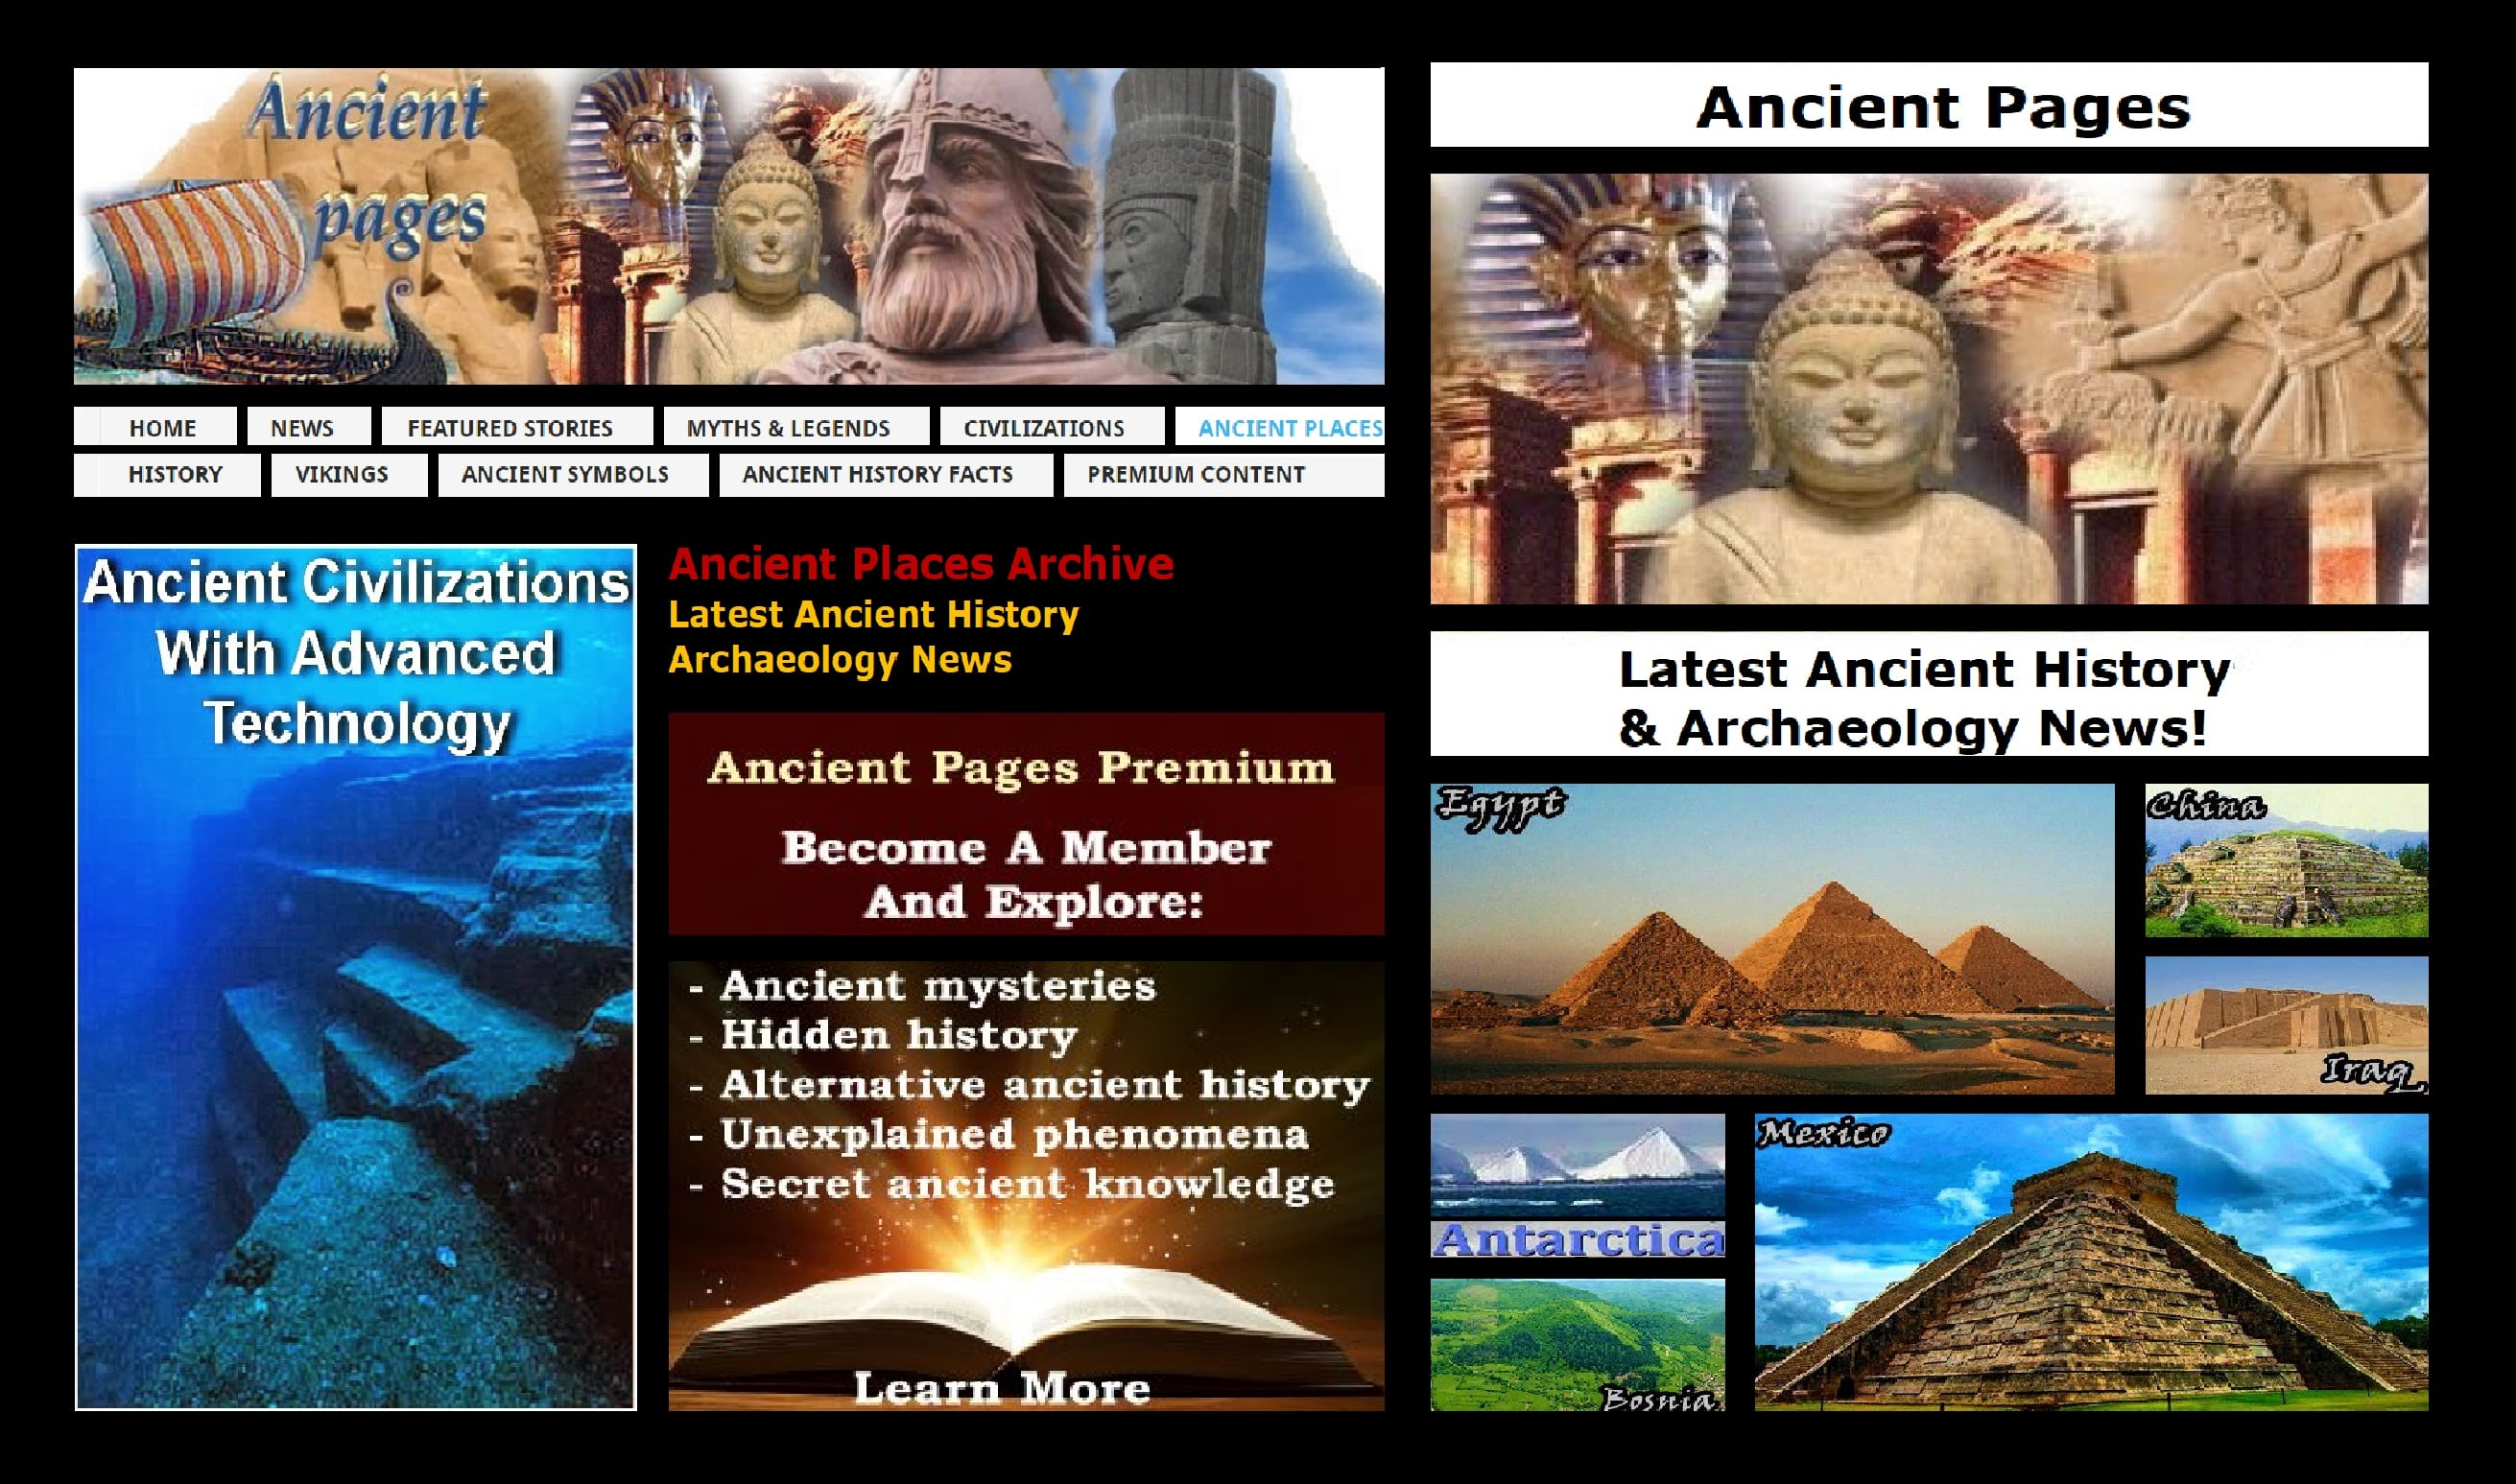 Ancient Pages Archive